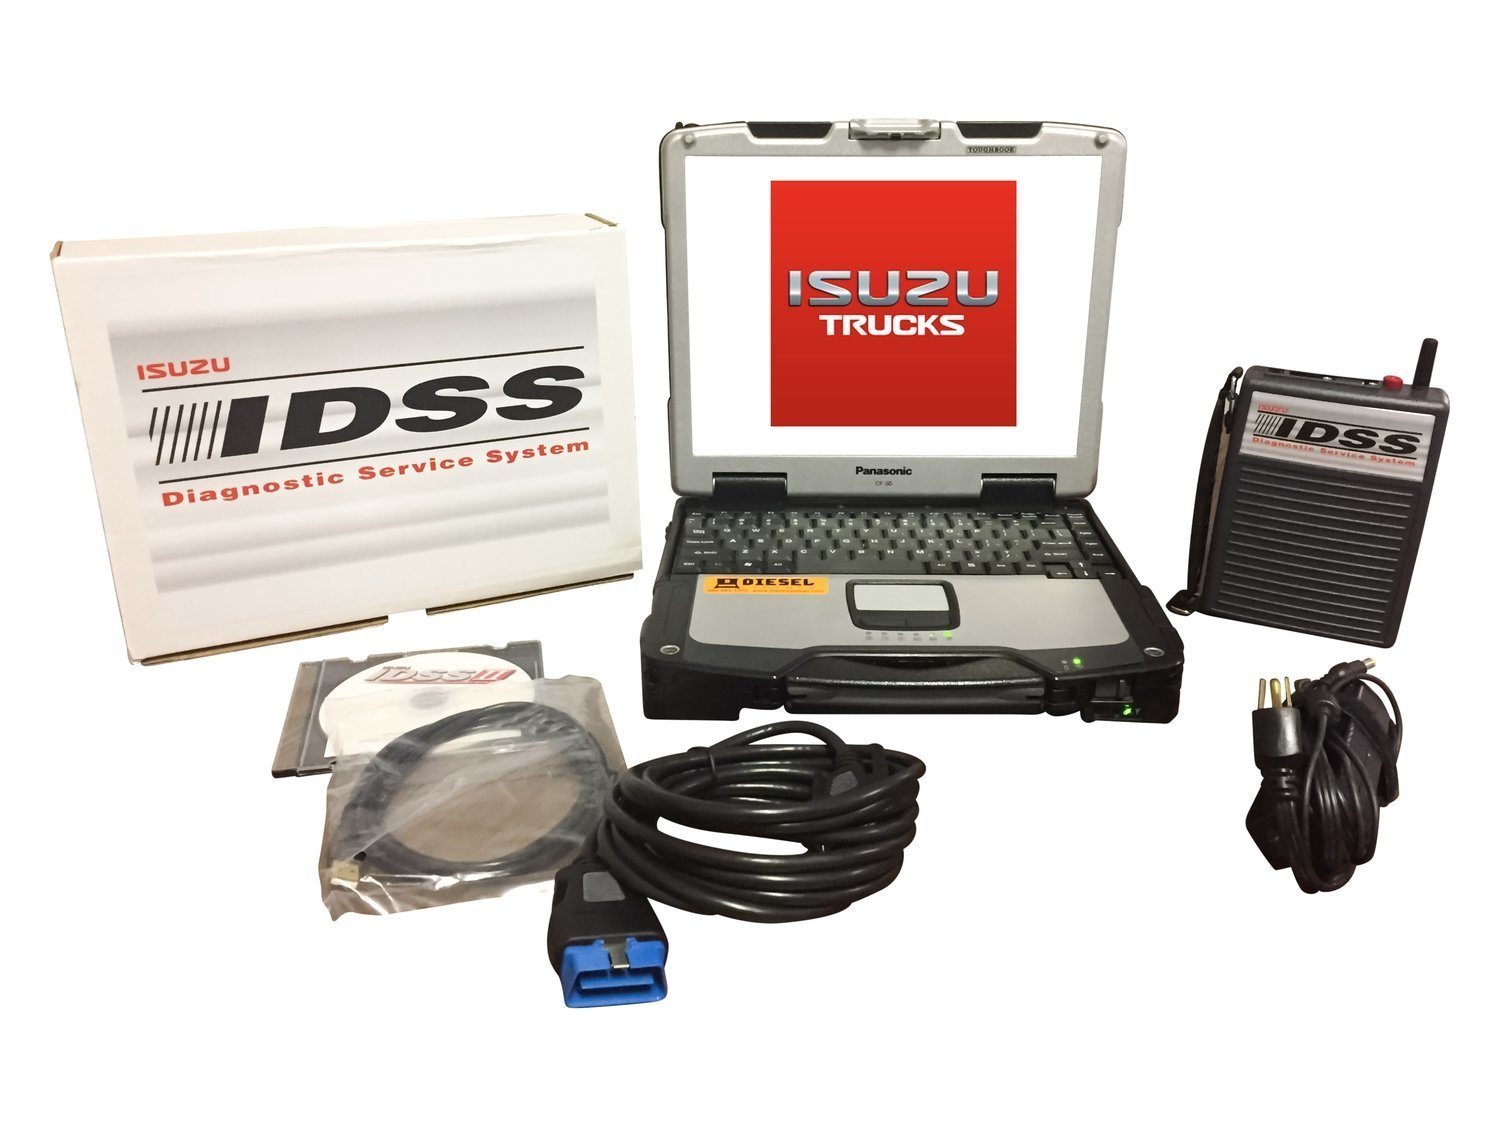 Isuzu IDSS Diesel Diagnostic Laptop Kit 0028